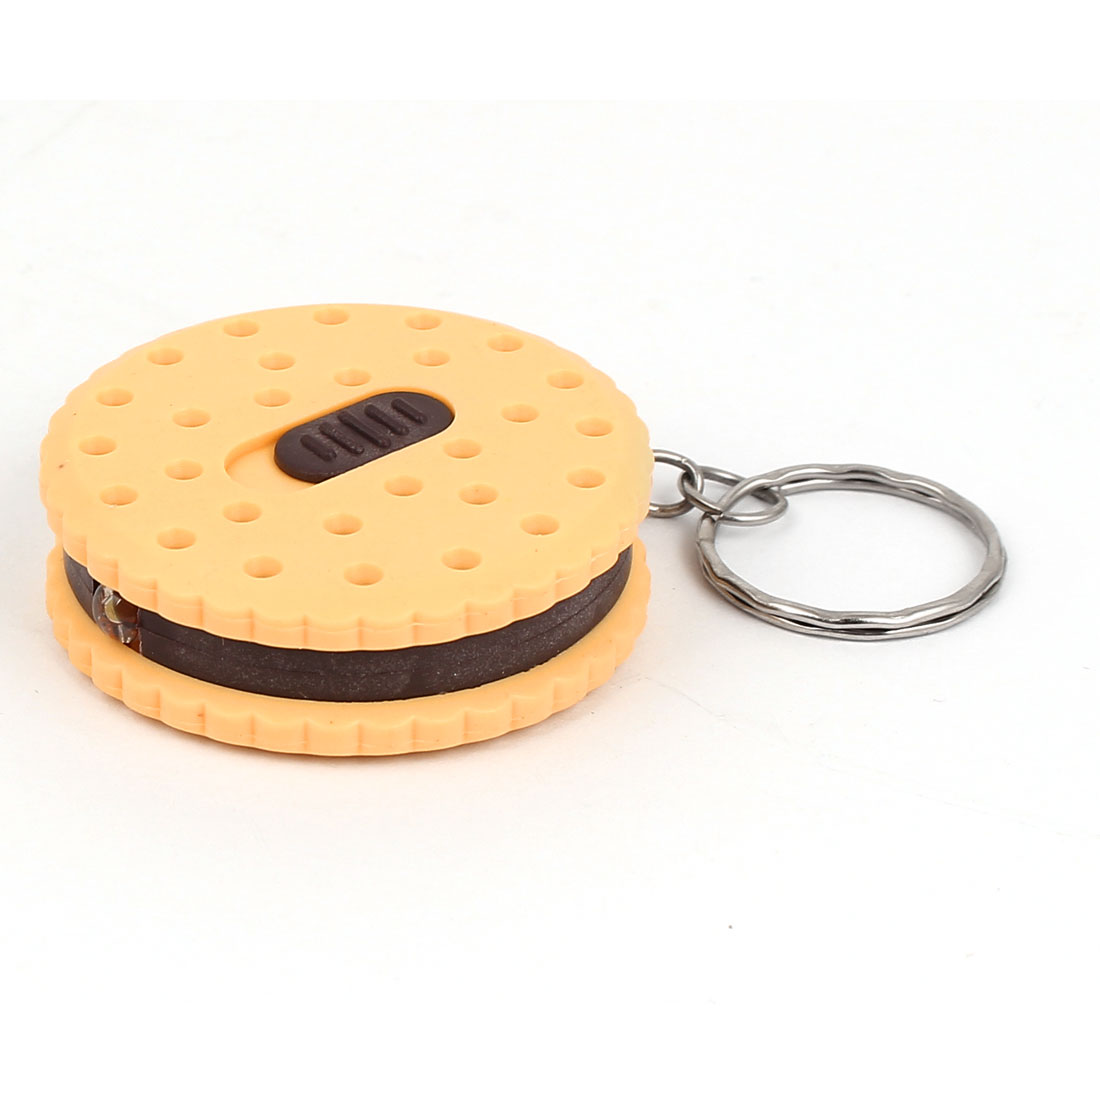 Chocolate Biscuit Shaped Flashlight Torch Pendant Keychain Keyring Key Holder Yellow